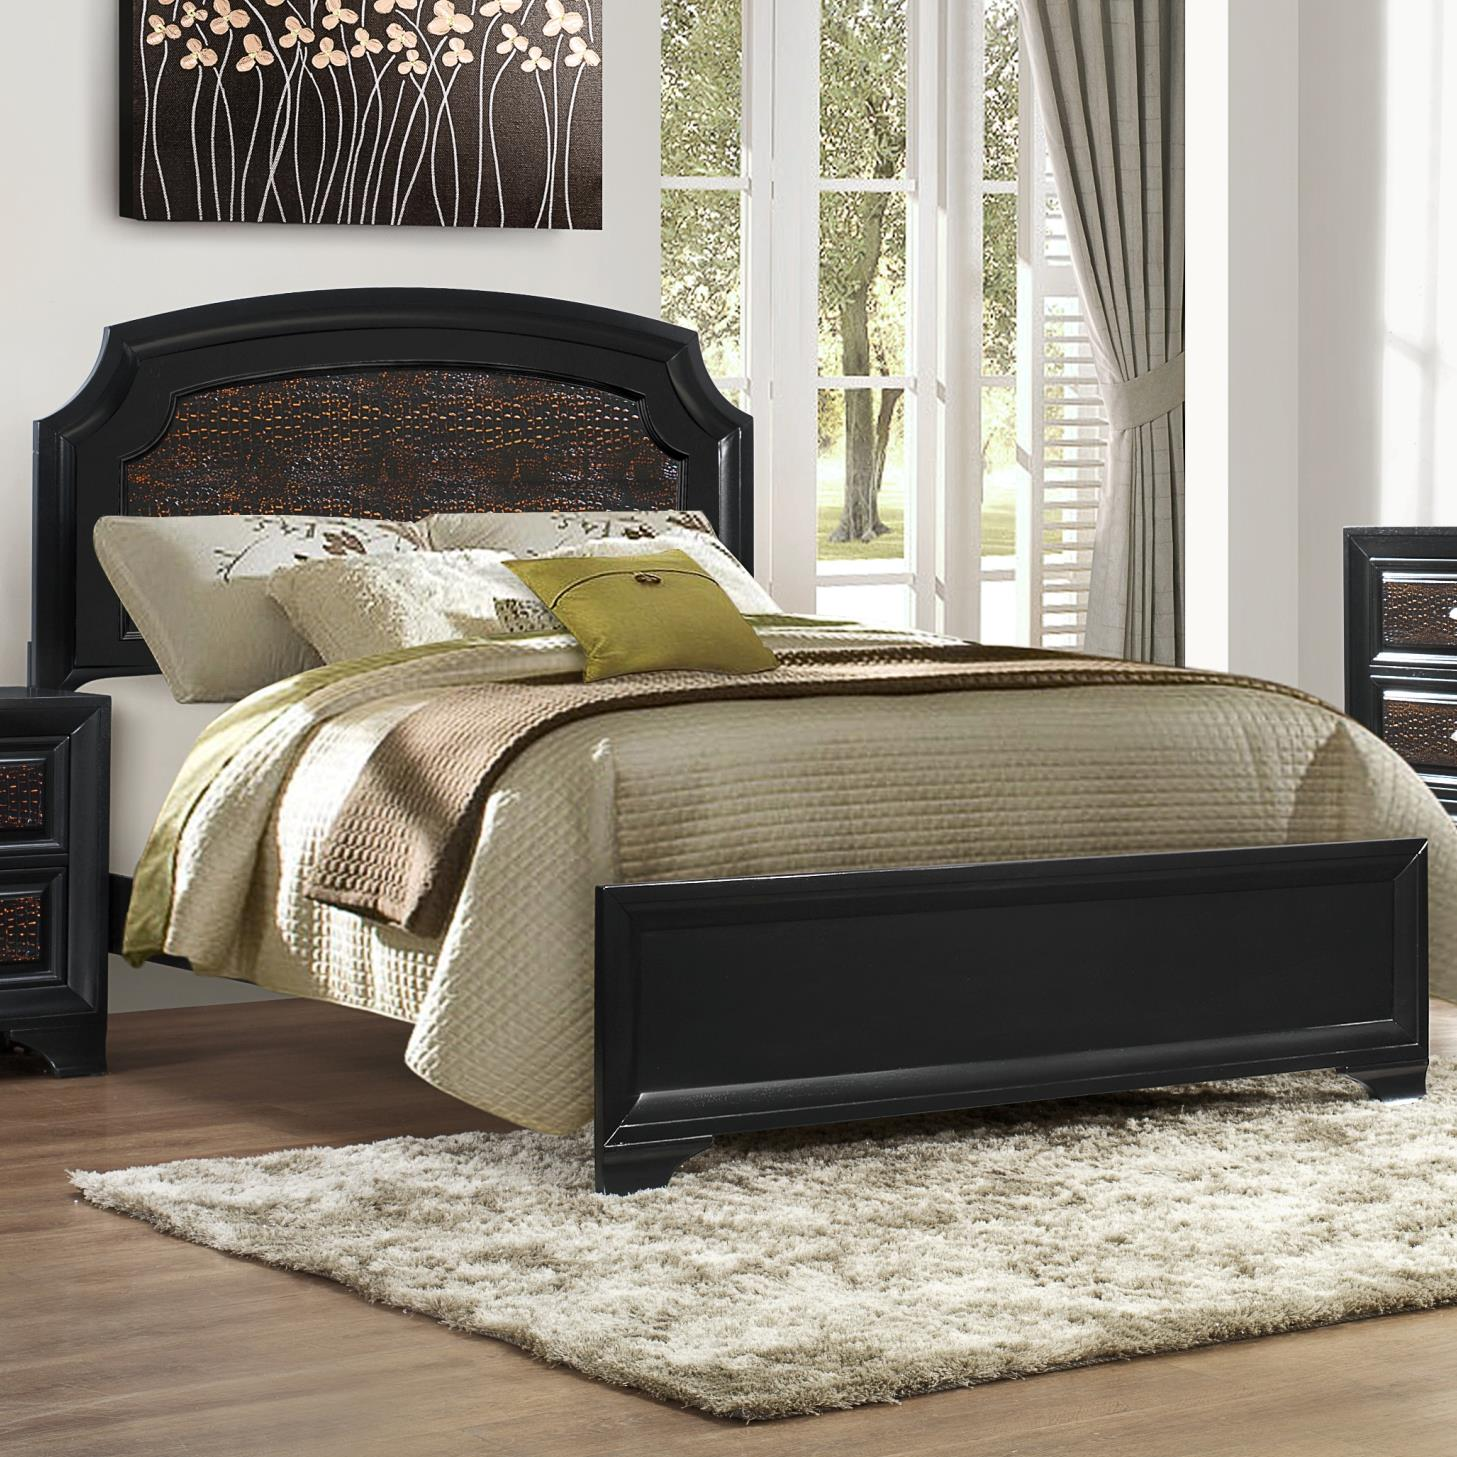 Crown Mark Andros King Bed - Item Number: B4300-K-HBFB+KQ-RAIL